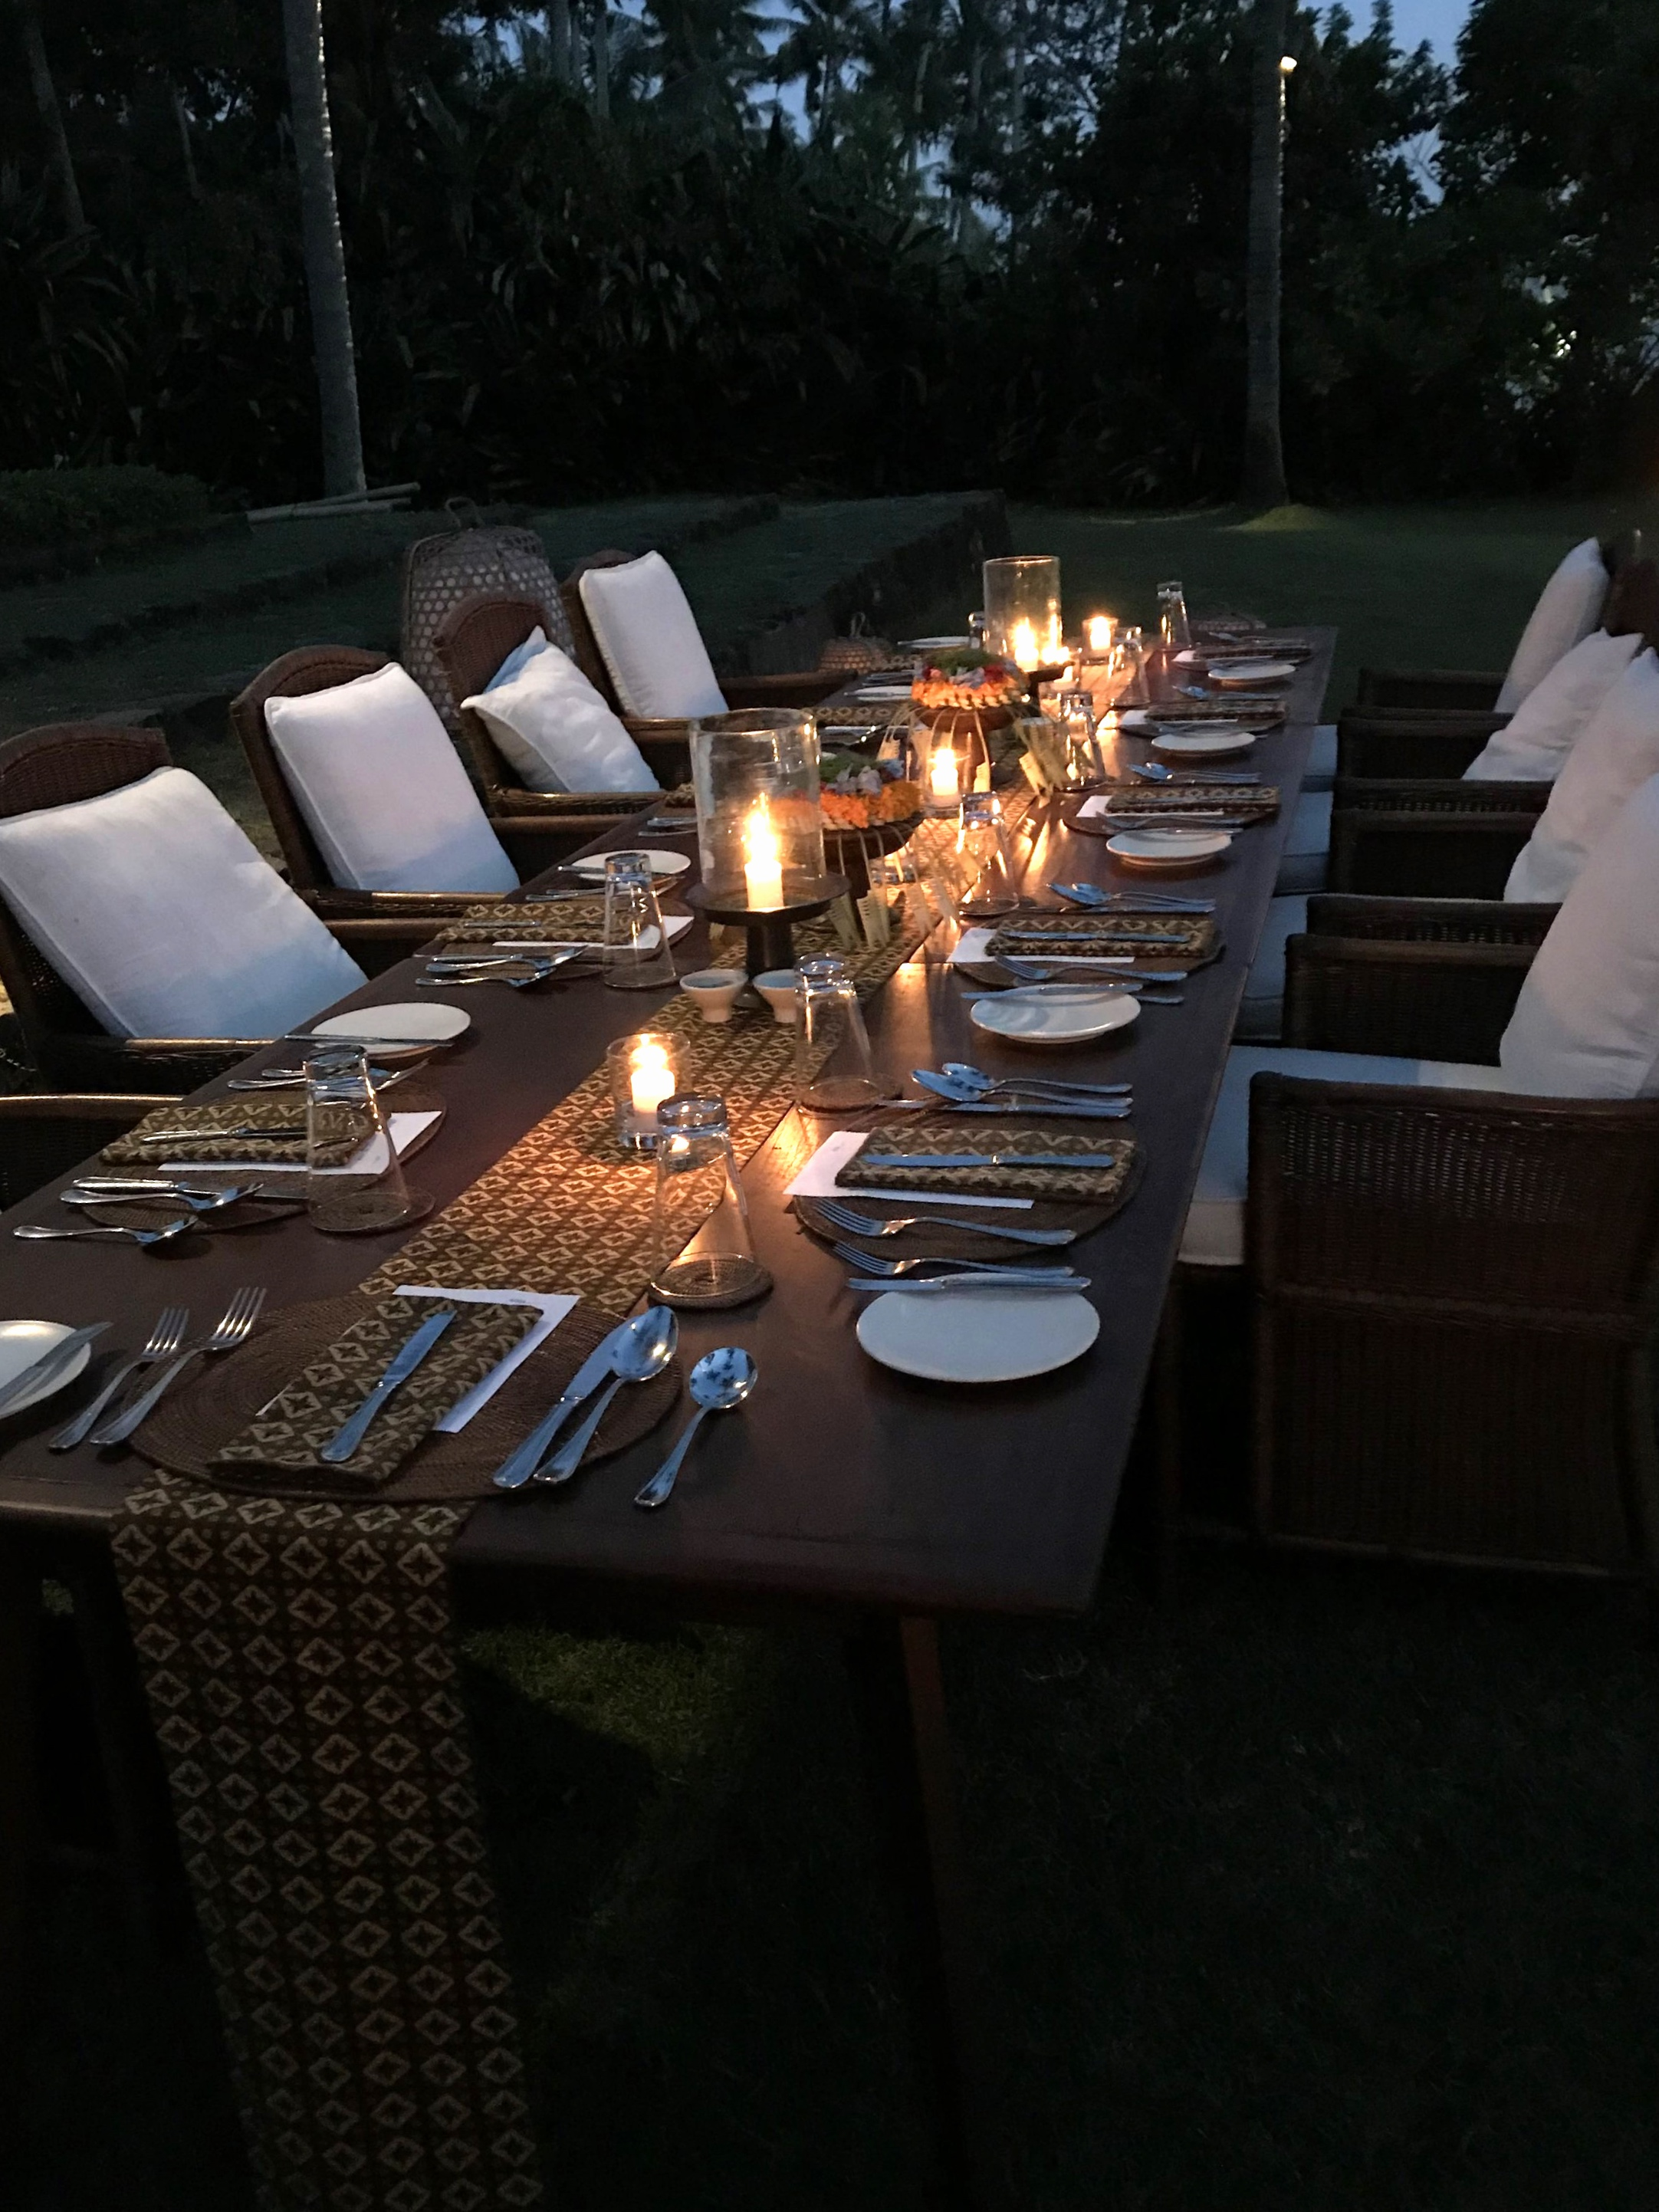 A relaxing evening meal | EAT.PRAY.MOVE Yoga | Bali, Indonesia